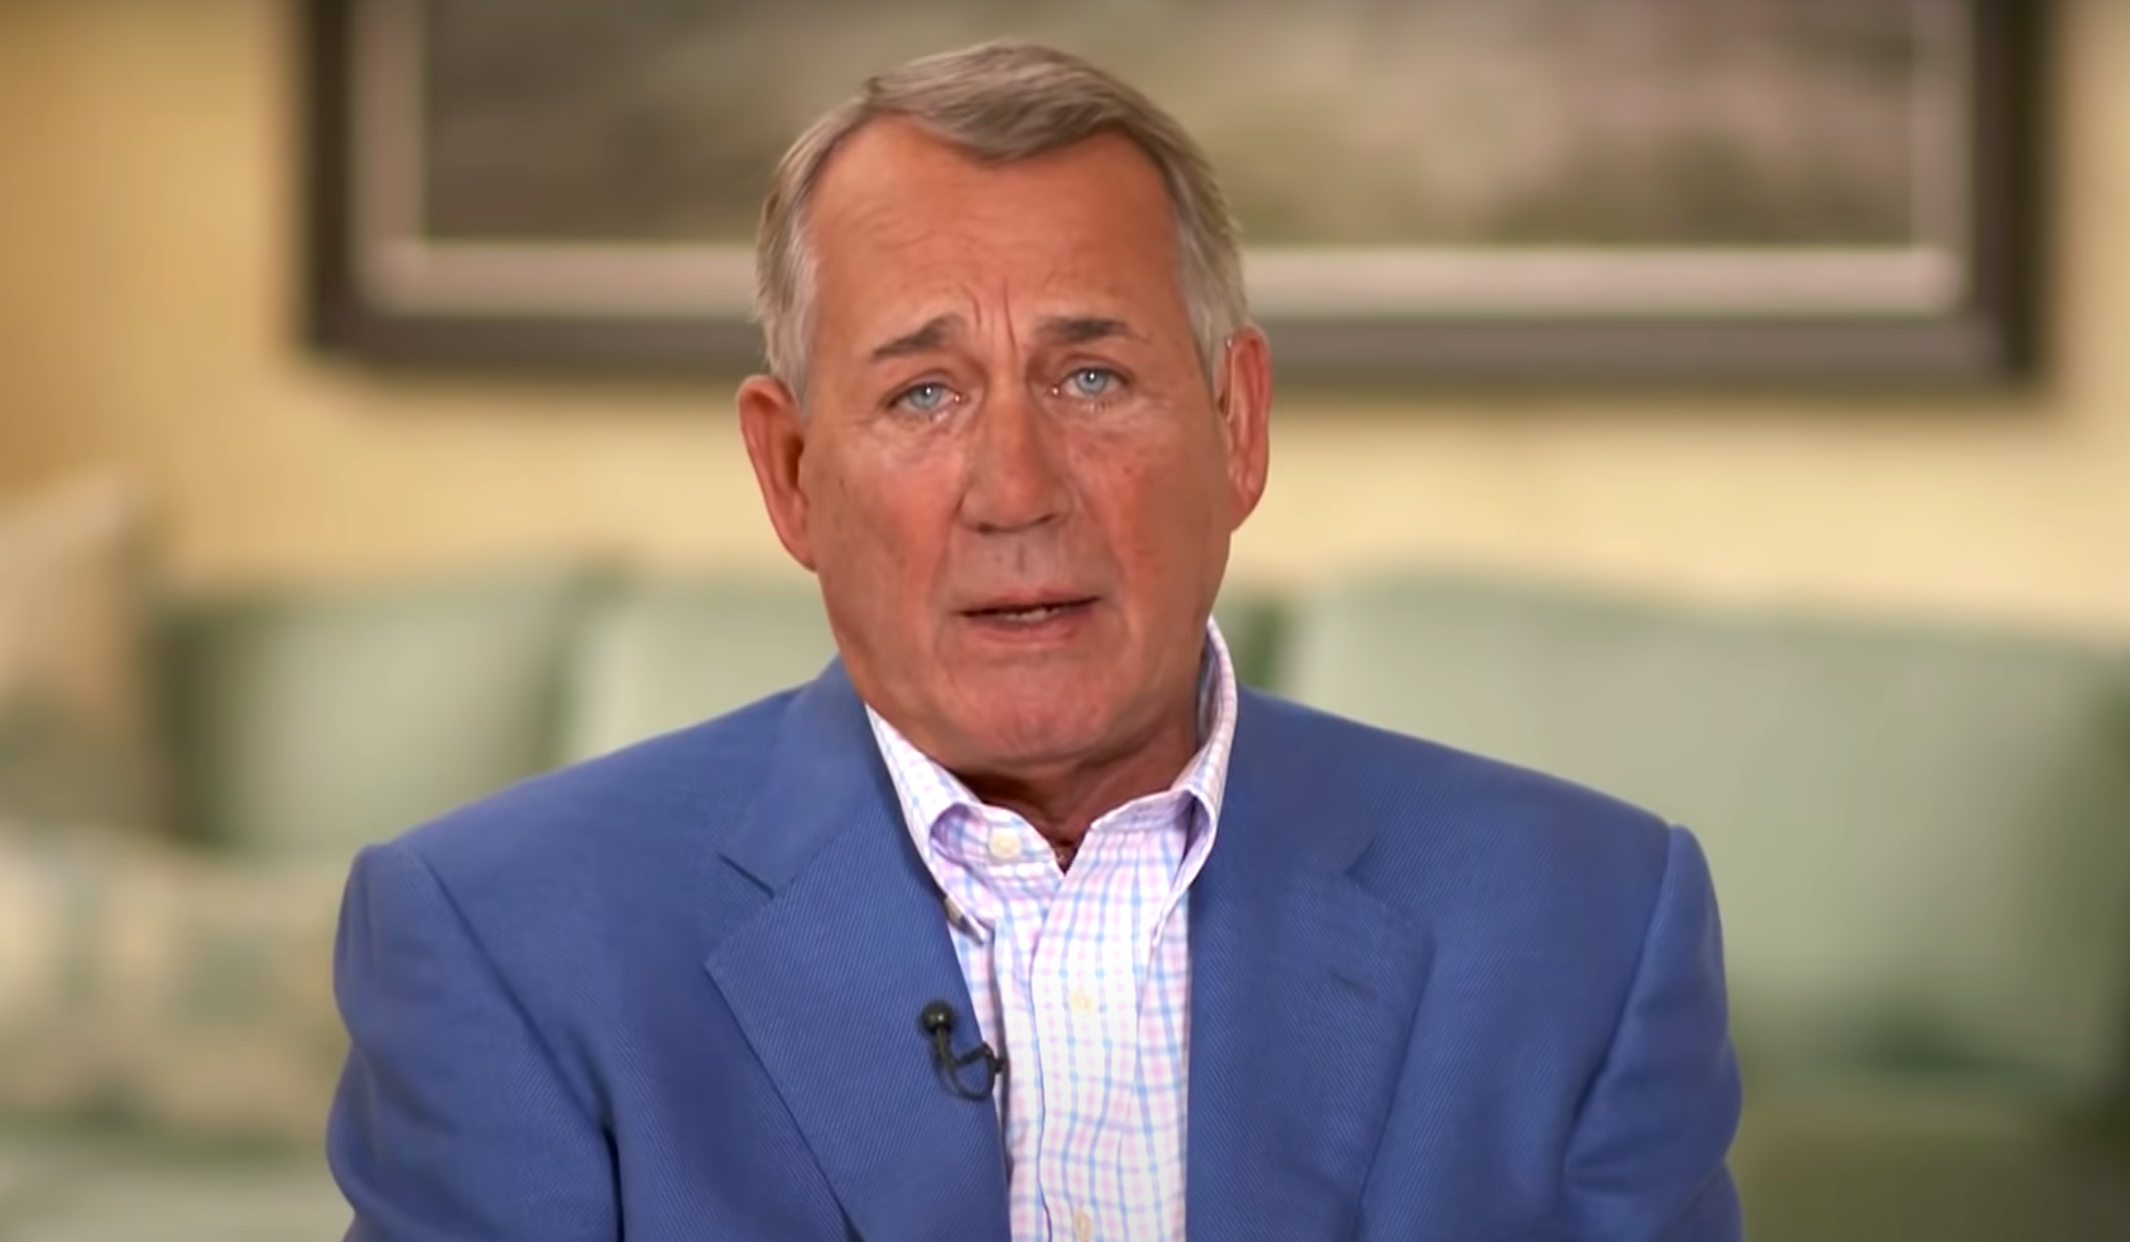 John Boehner speaks about his new book on CBS News